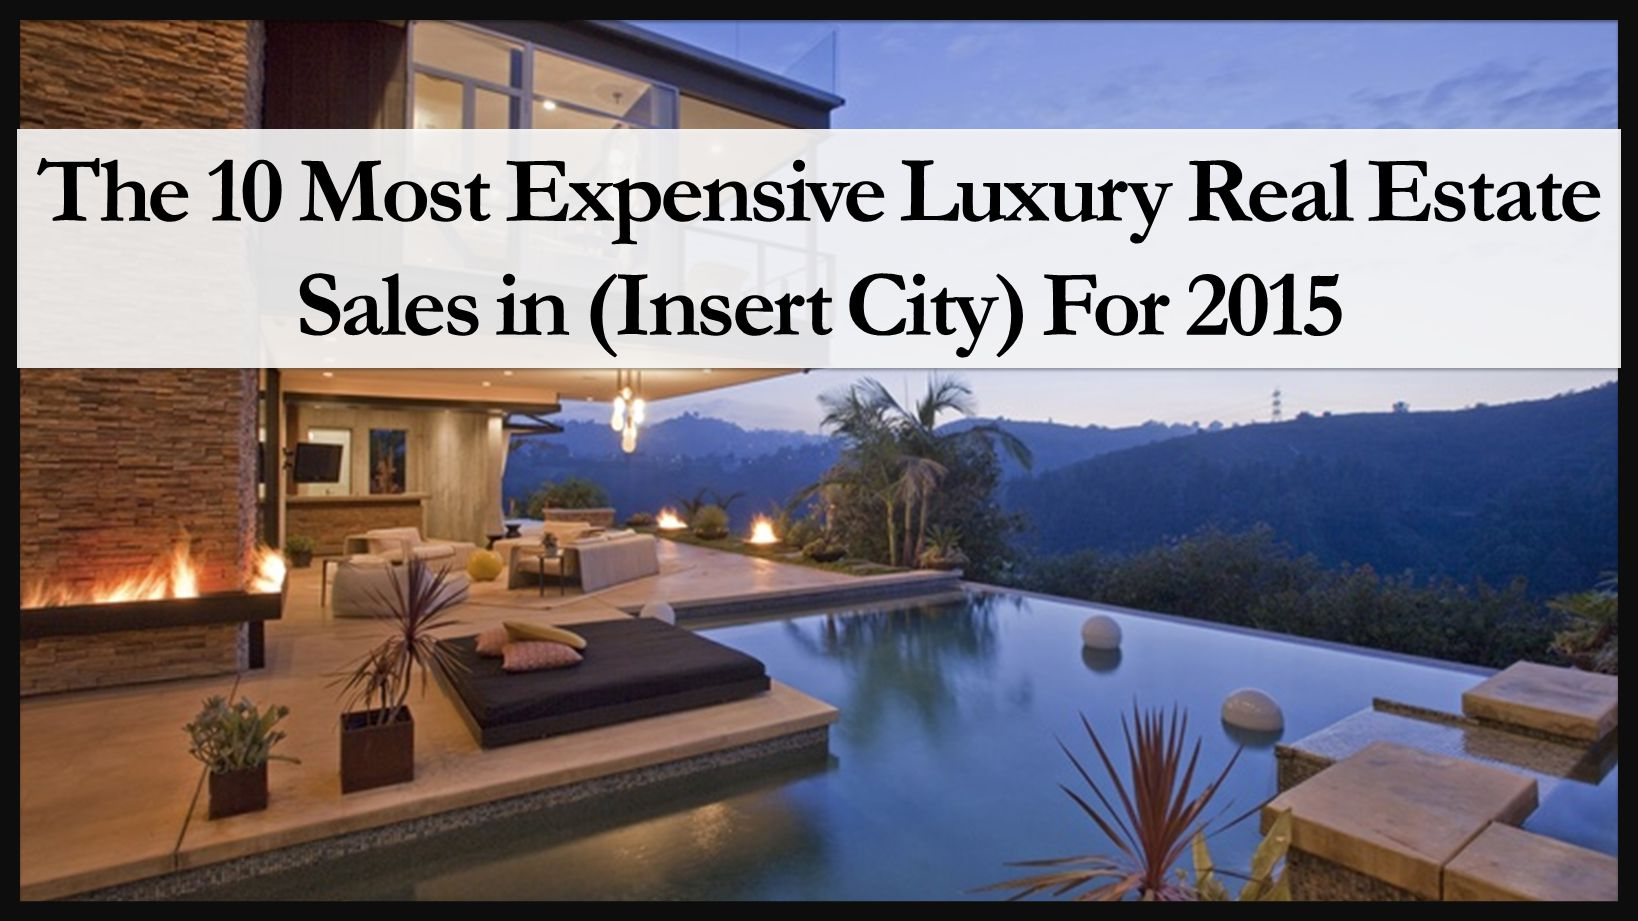 The 10 Most Expensive Luxury Real Estate Sales in (Insert City) For 2015